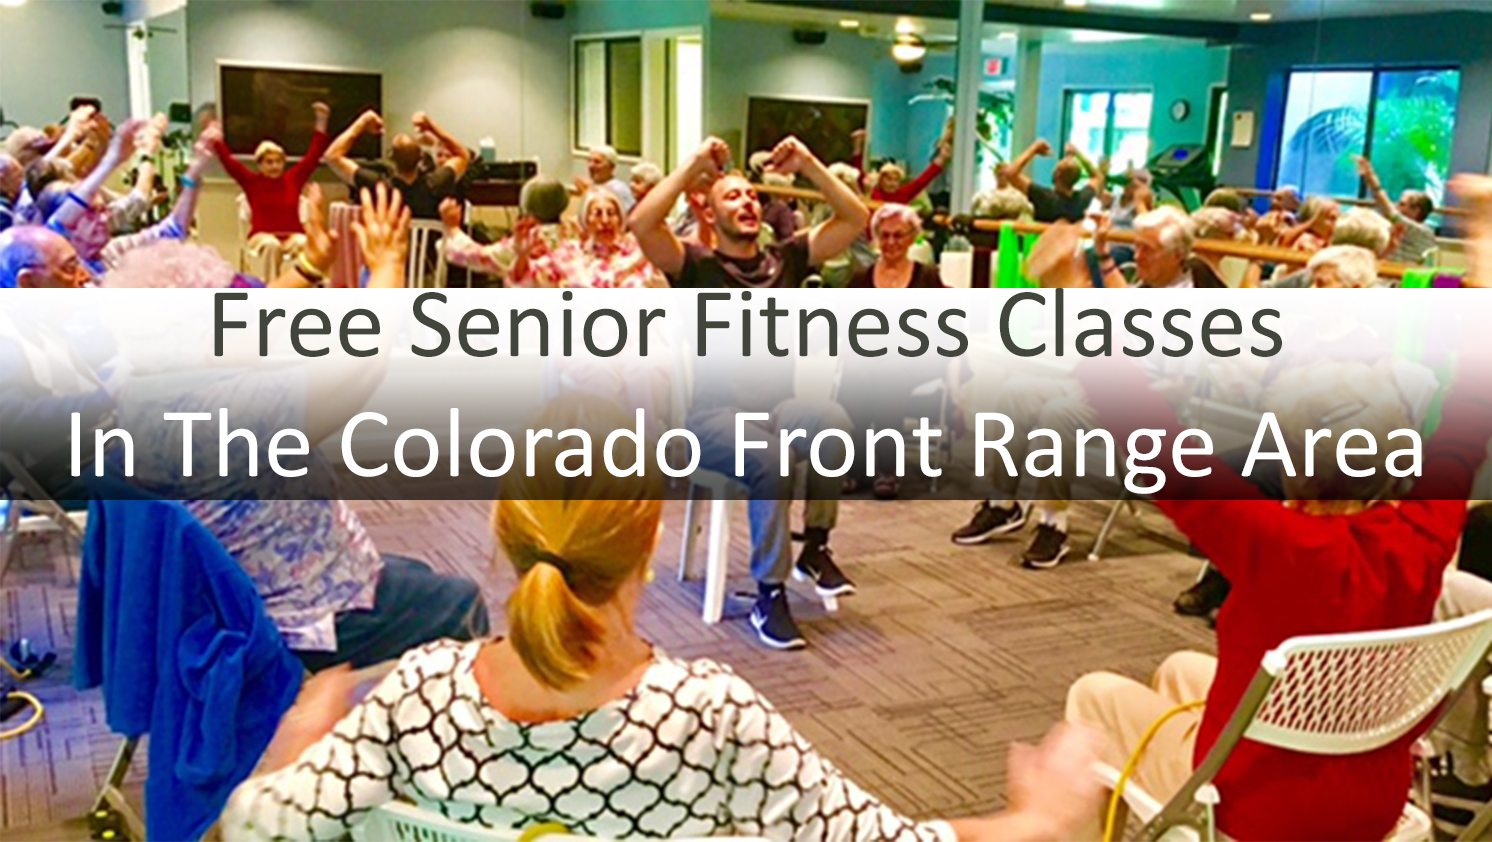 Free Senior Fitness Classes in the Colorado Front Range area